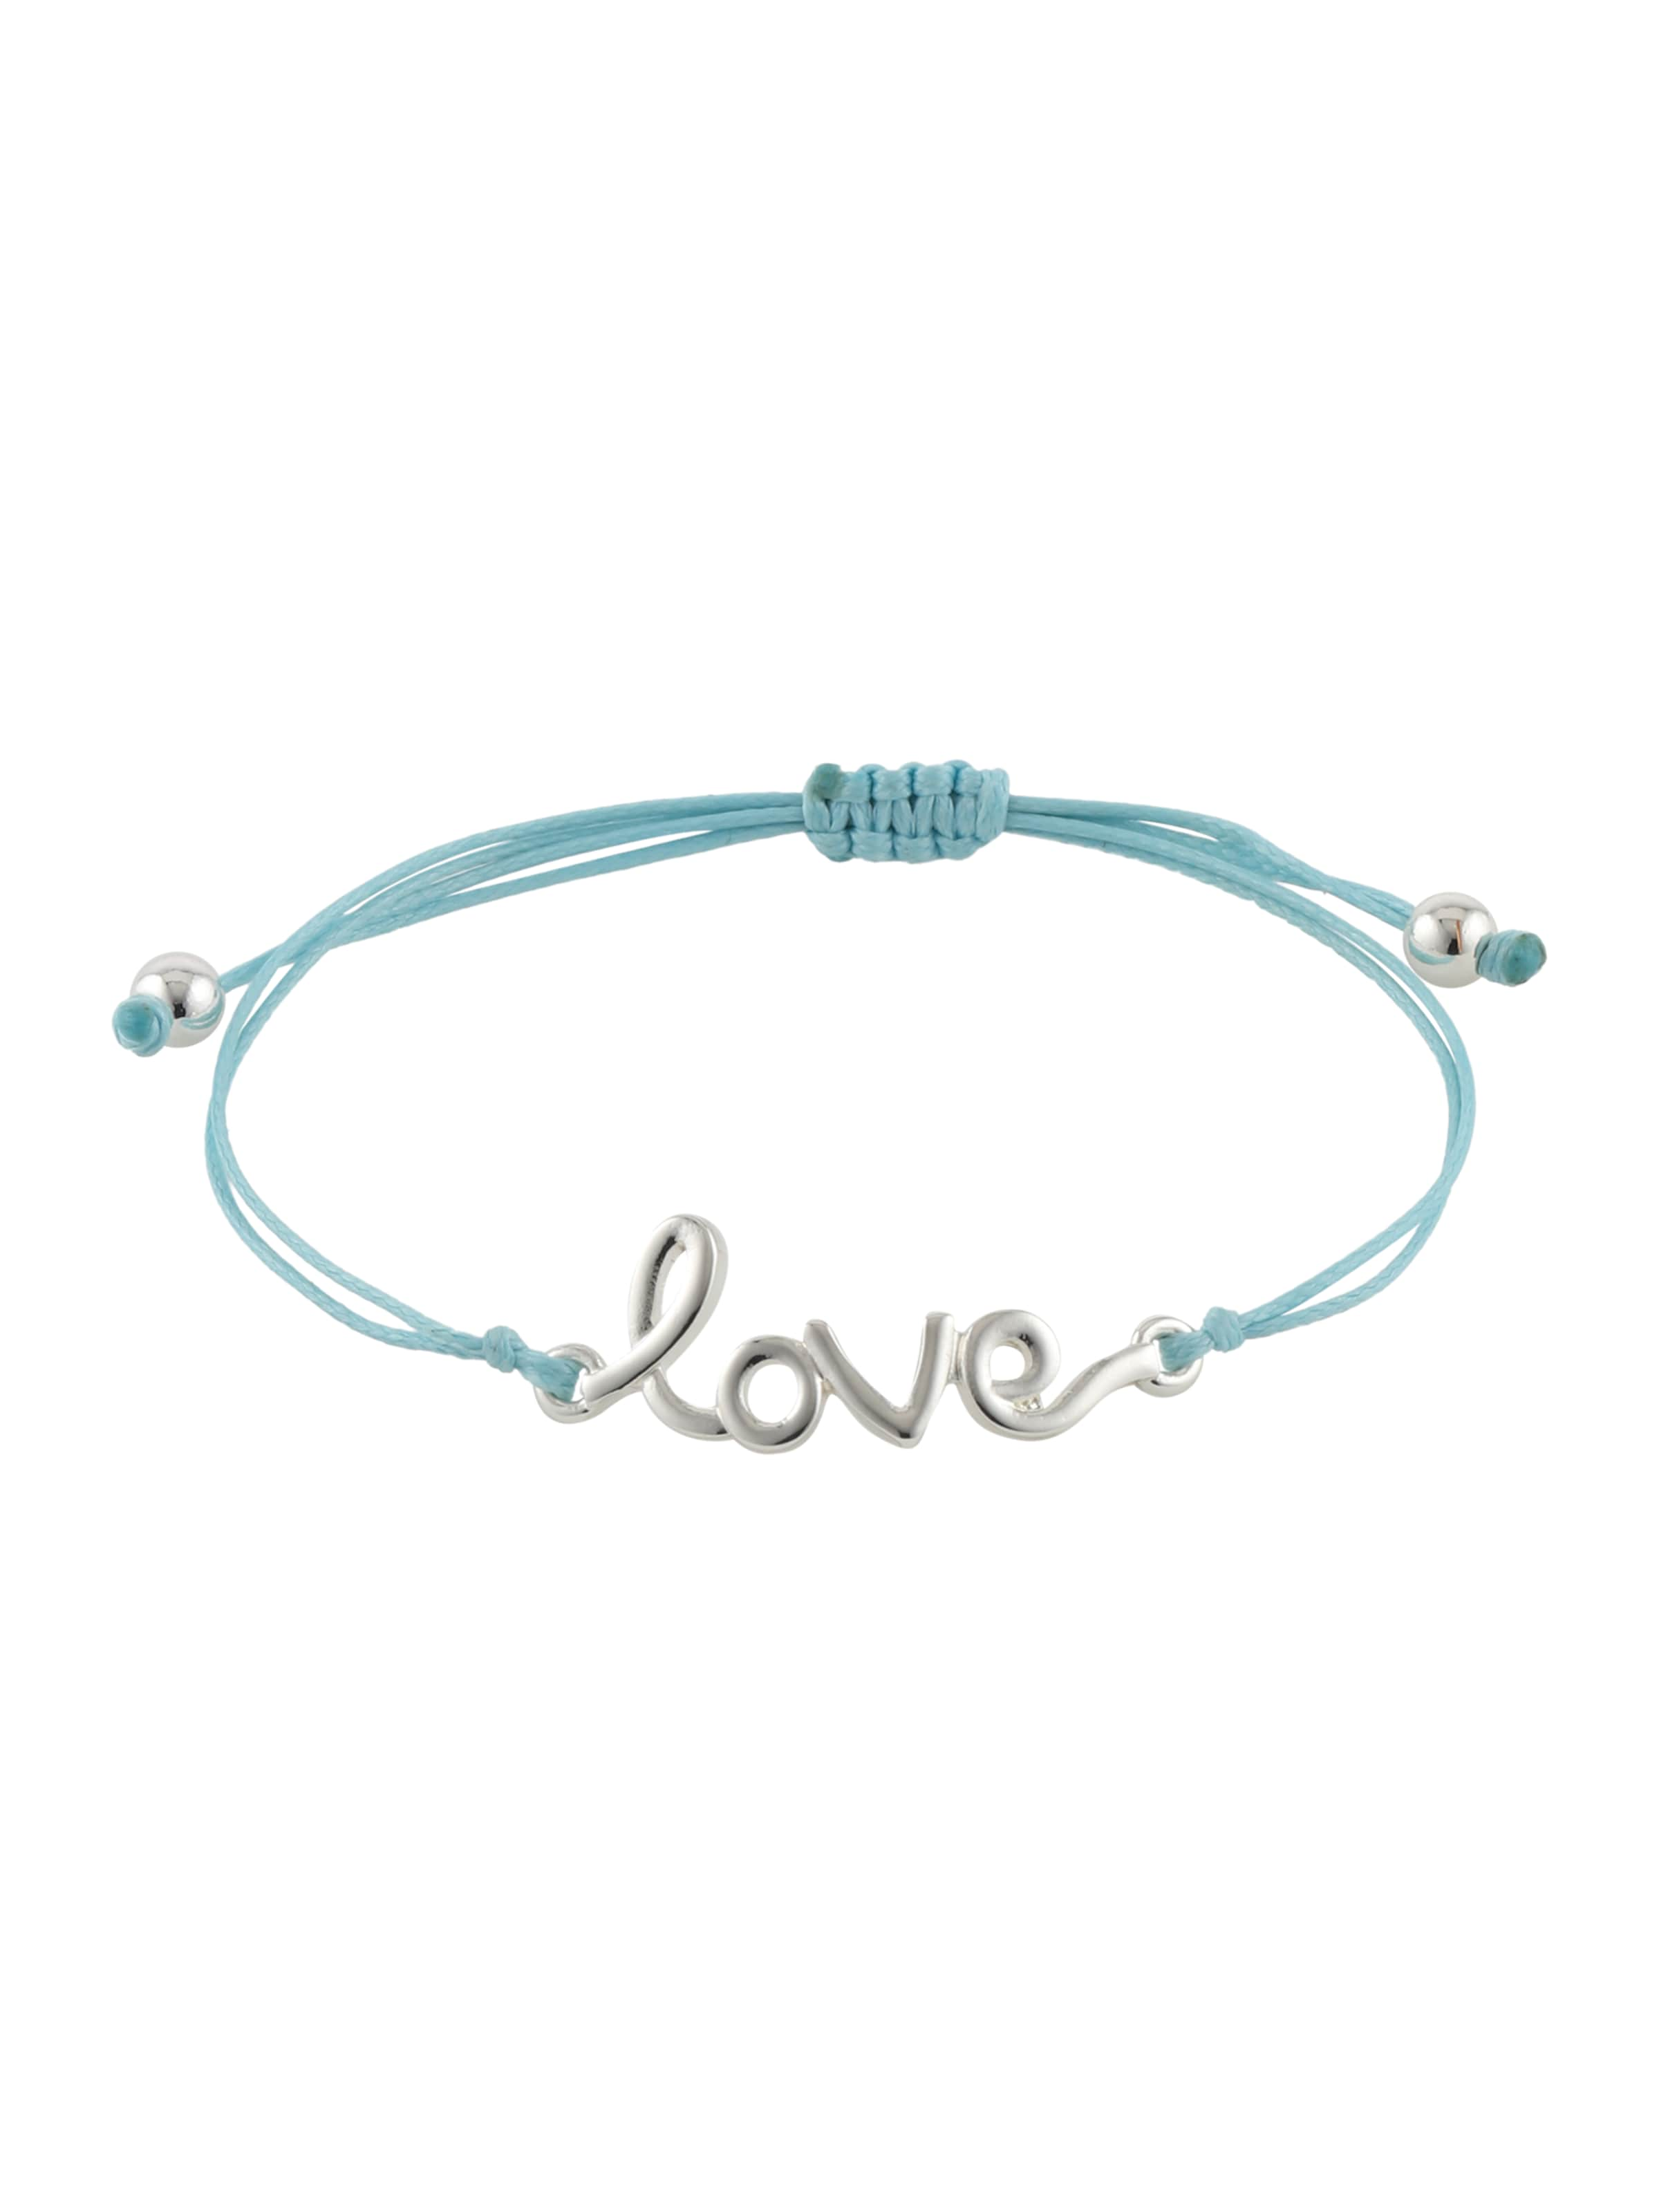 En 'levinia' TurquoiseArgent About You Bracelet pzGLqSjUMV